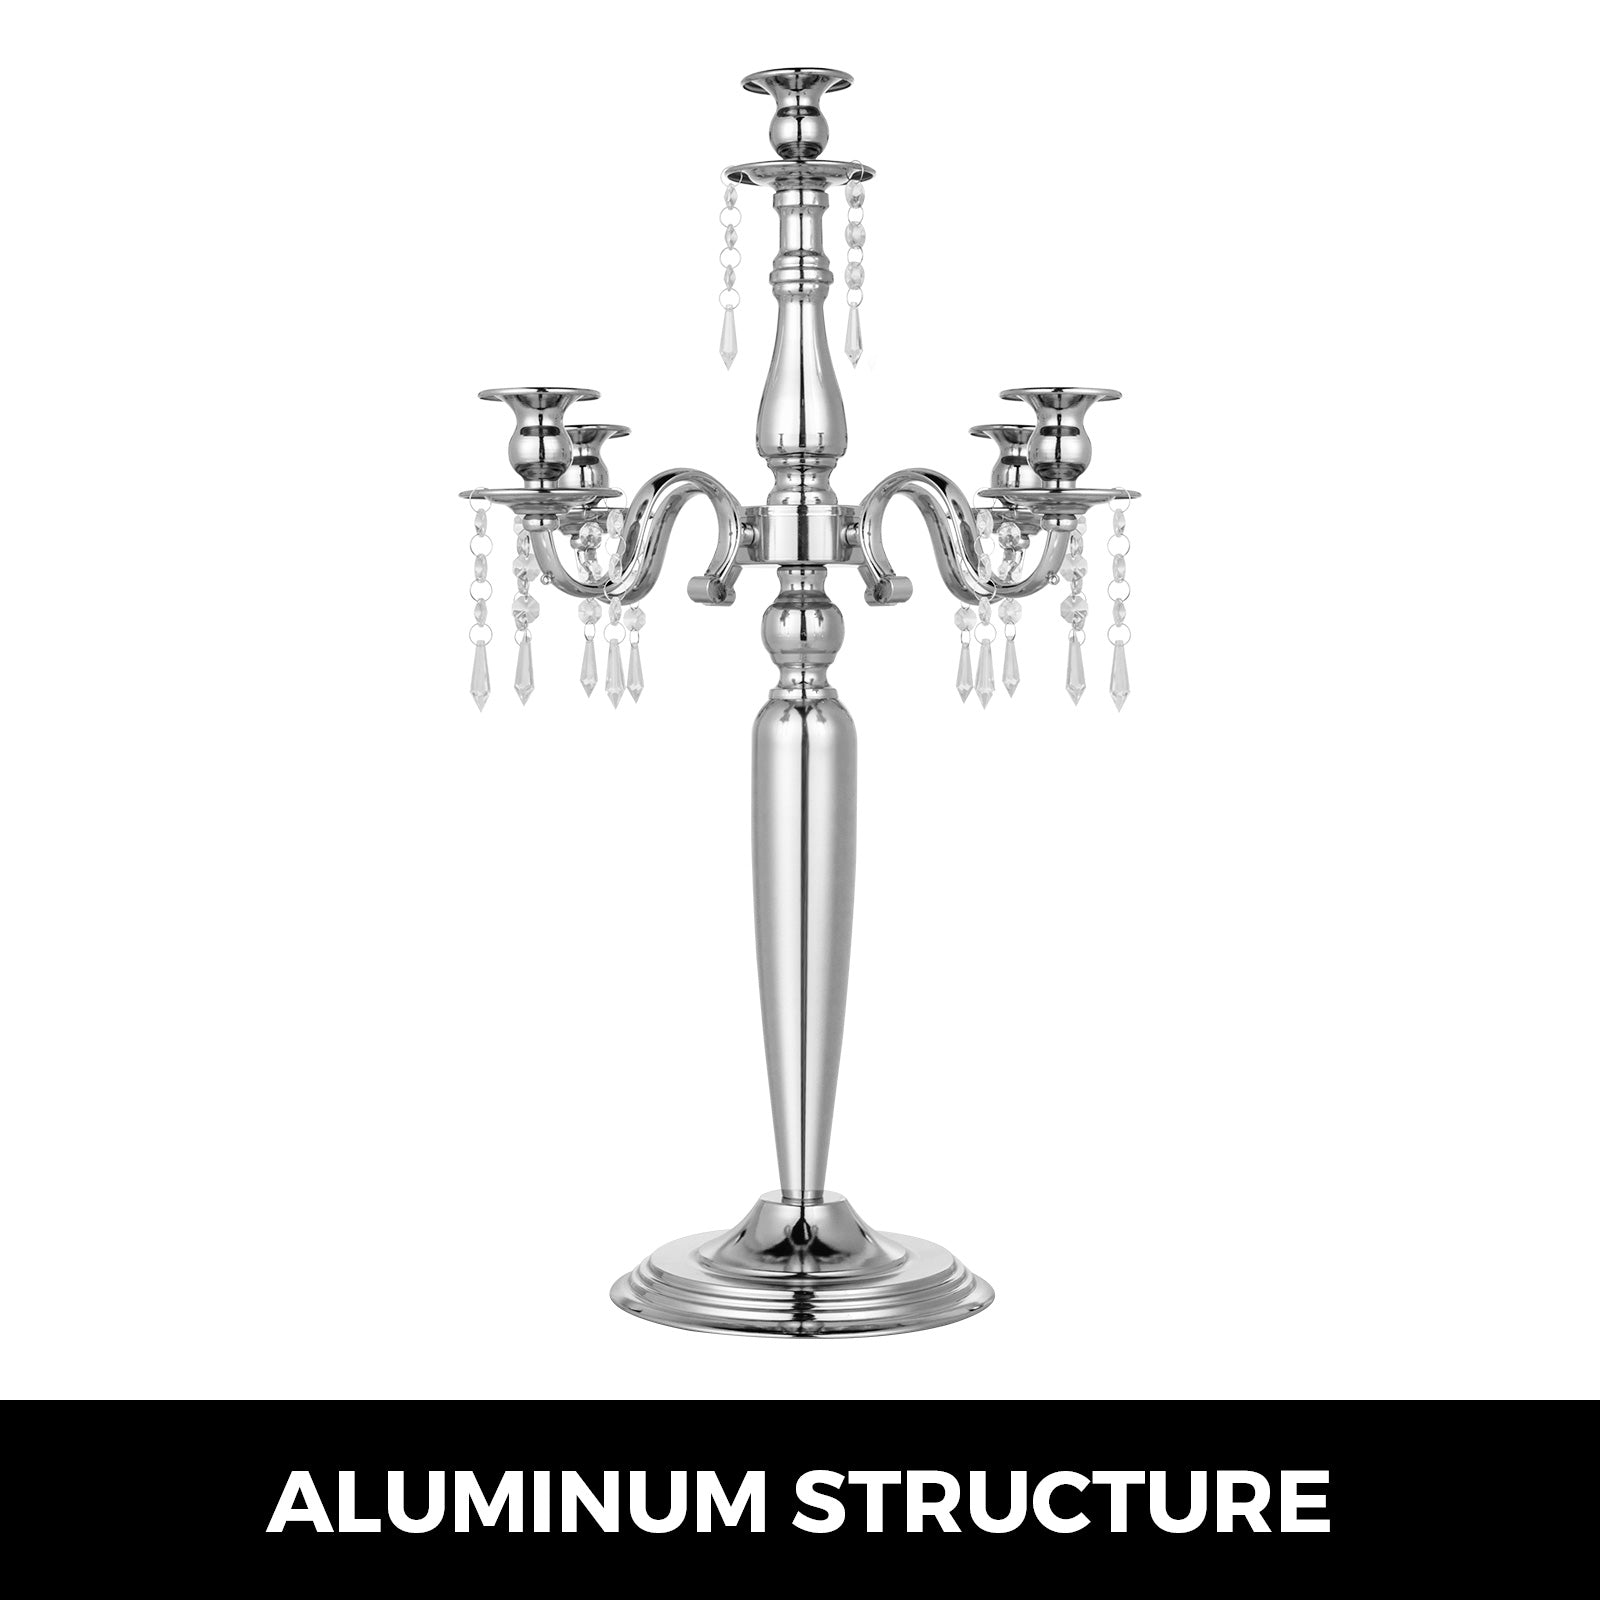 Wedding Votive Candle Holder 5 Arms Candelabra Gothic Silver Centerpieces Decor